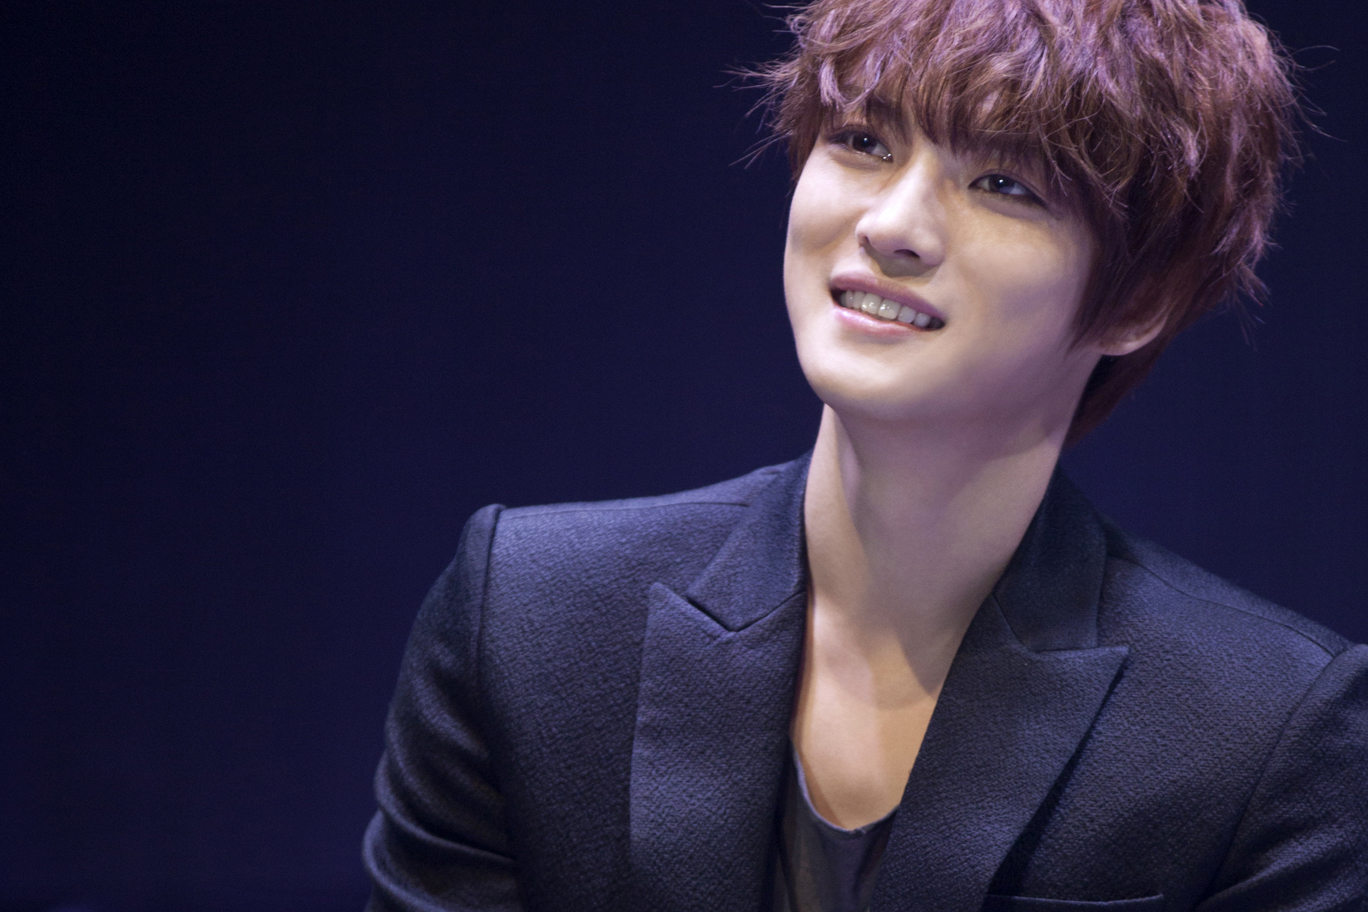 JYJ's Kim Jaejoong Congratulates Super Junior on Their 9th Anniversary